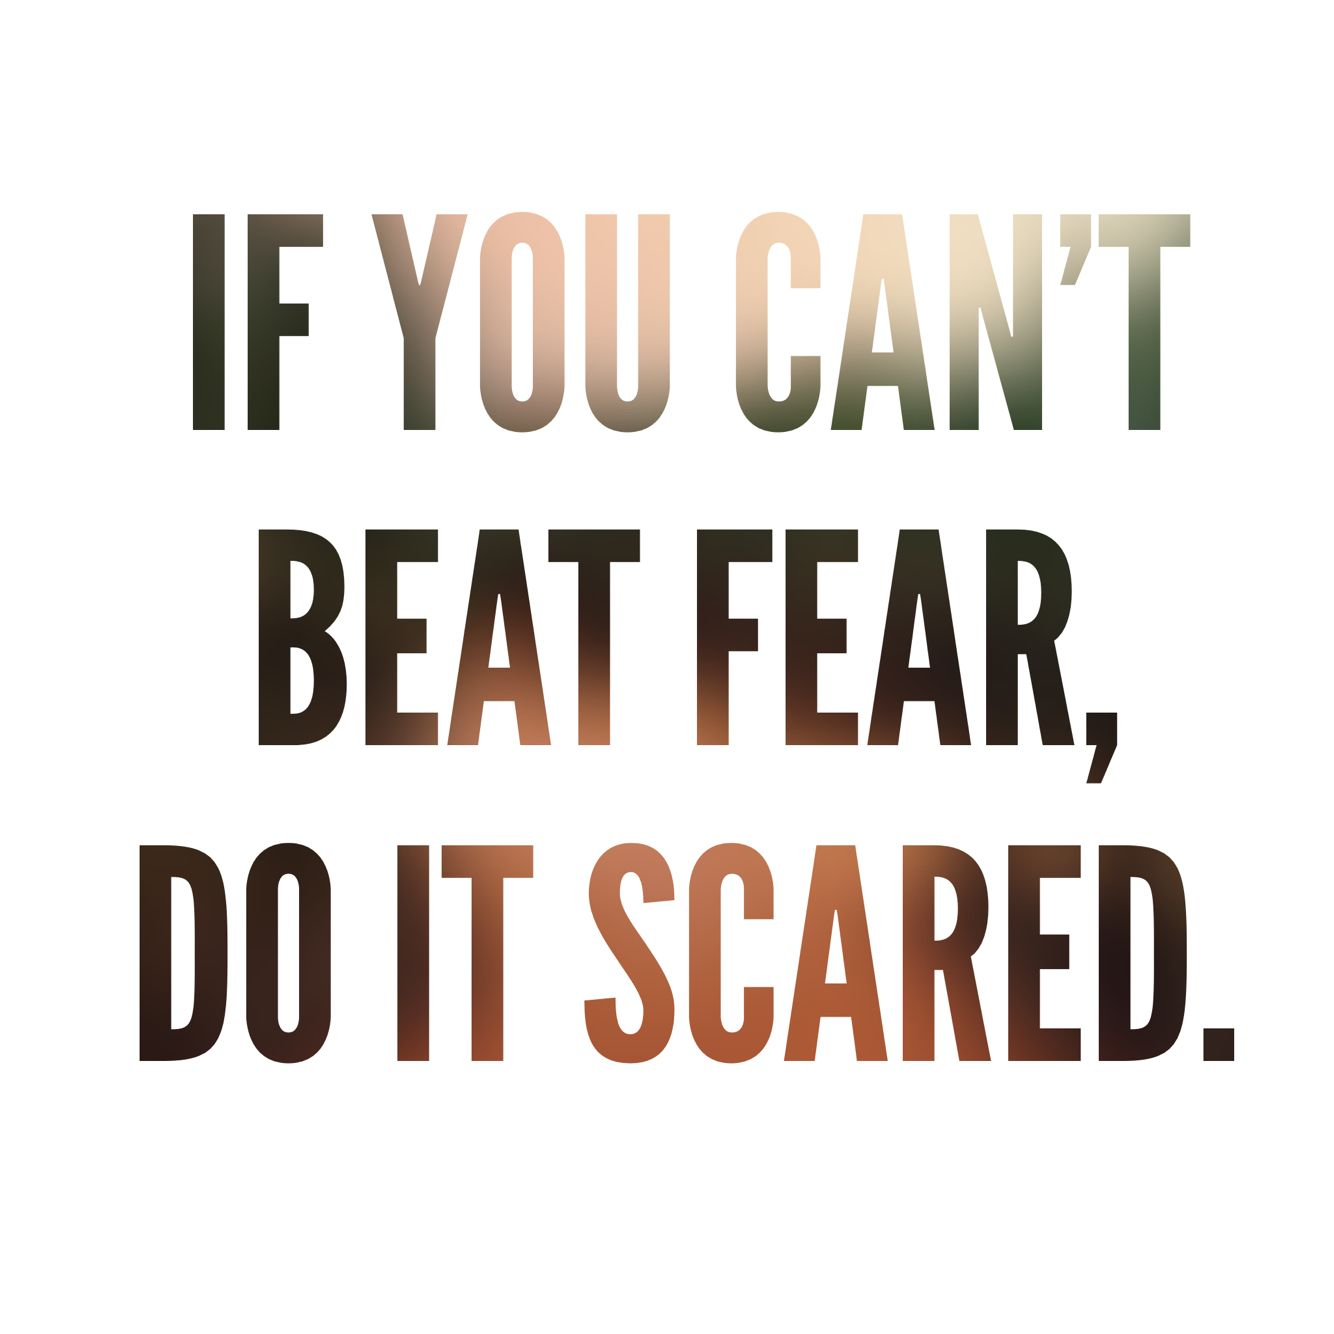 How to beat fear 41